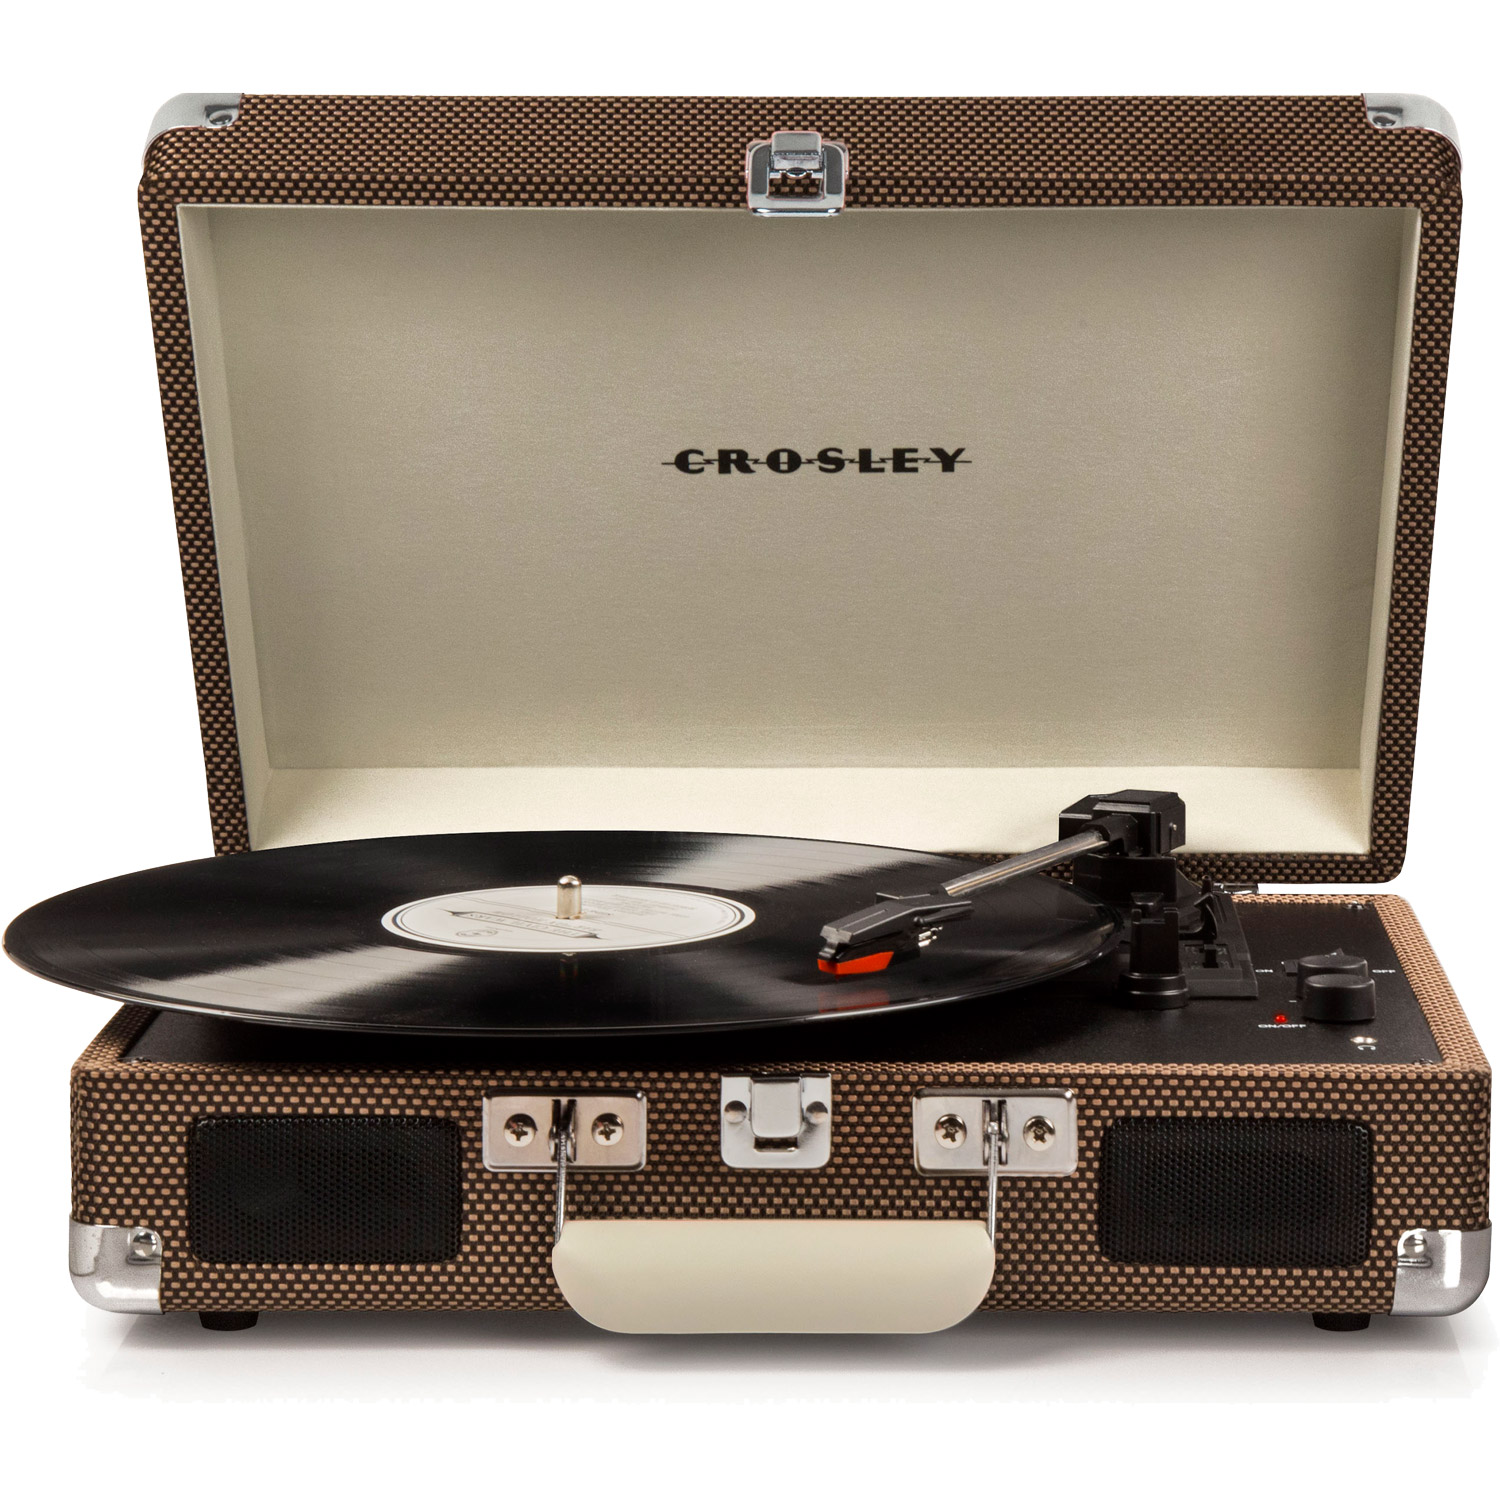 Crosley Cruiser Portable 3 Speed Turntable With Bluetooth Cr8005d